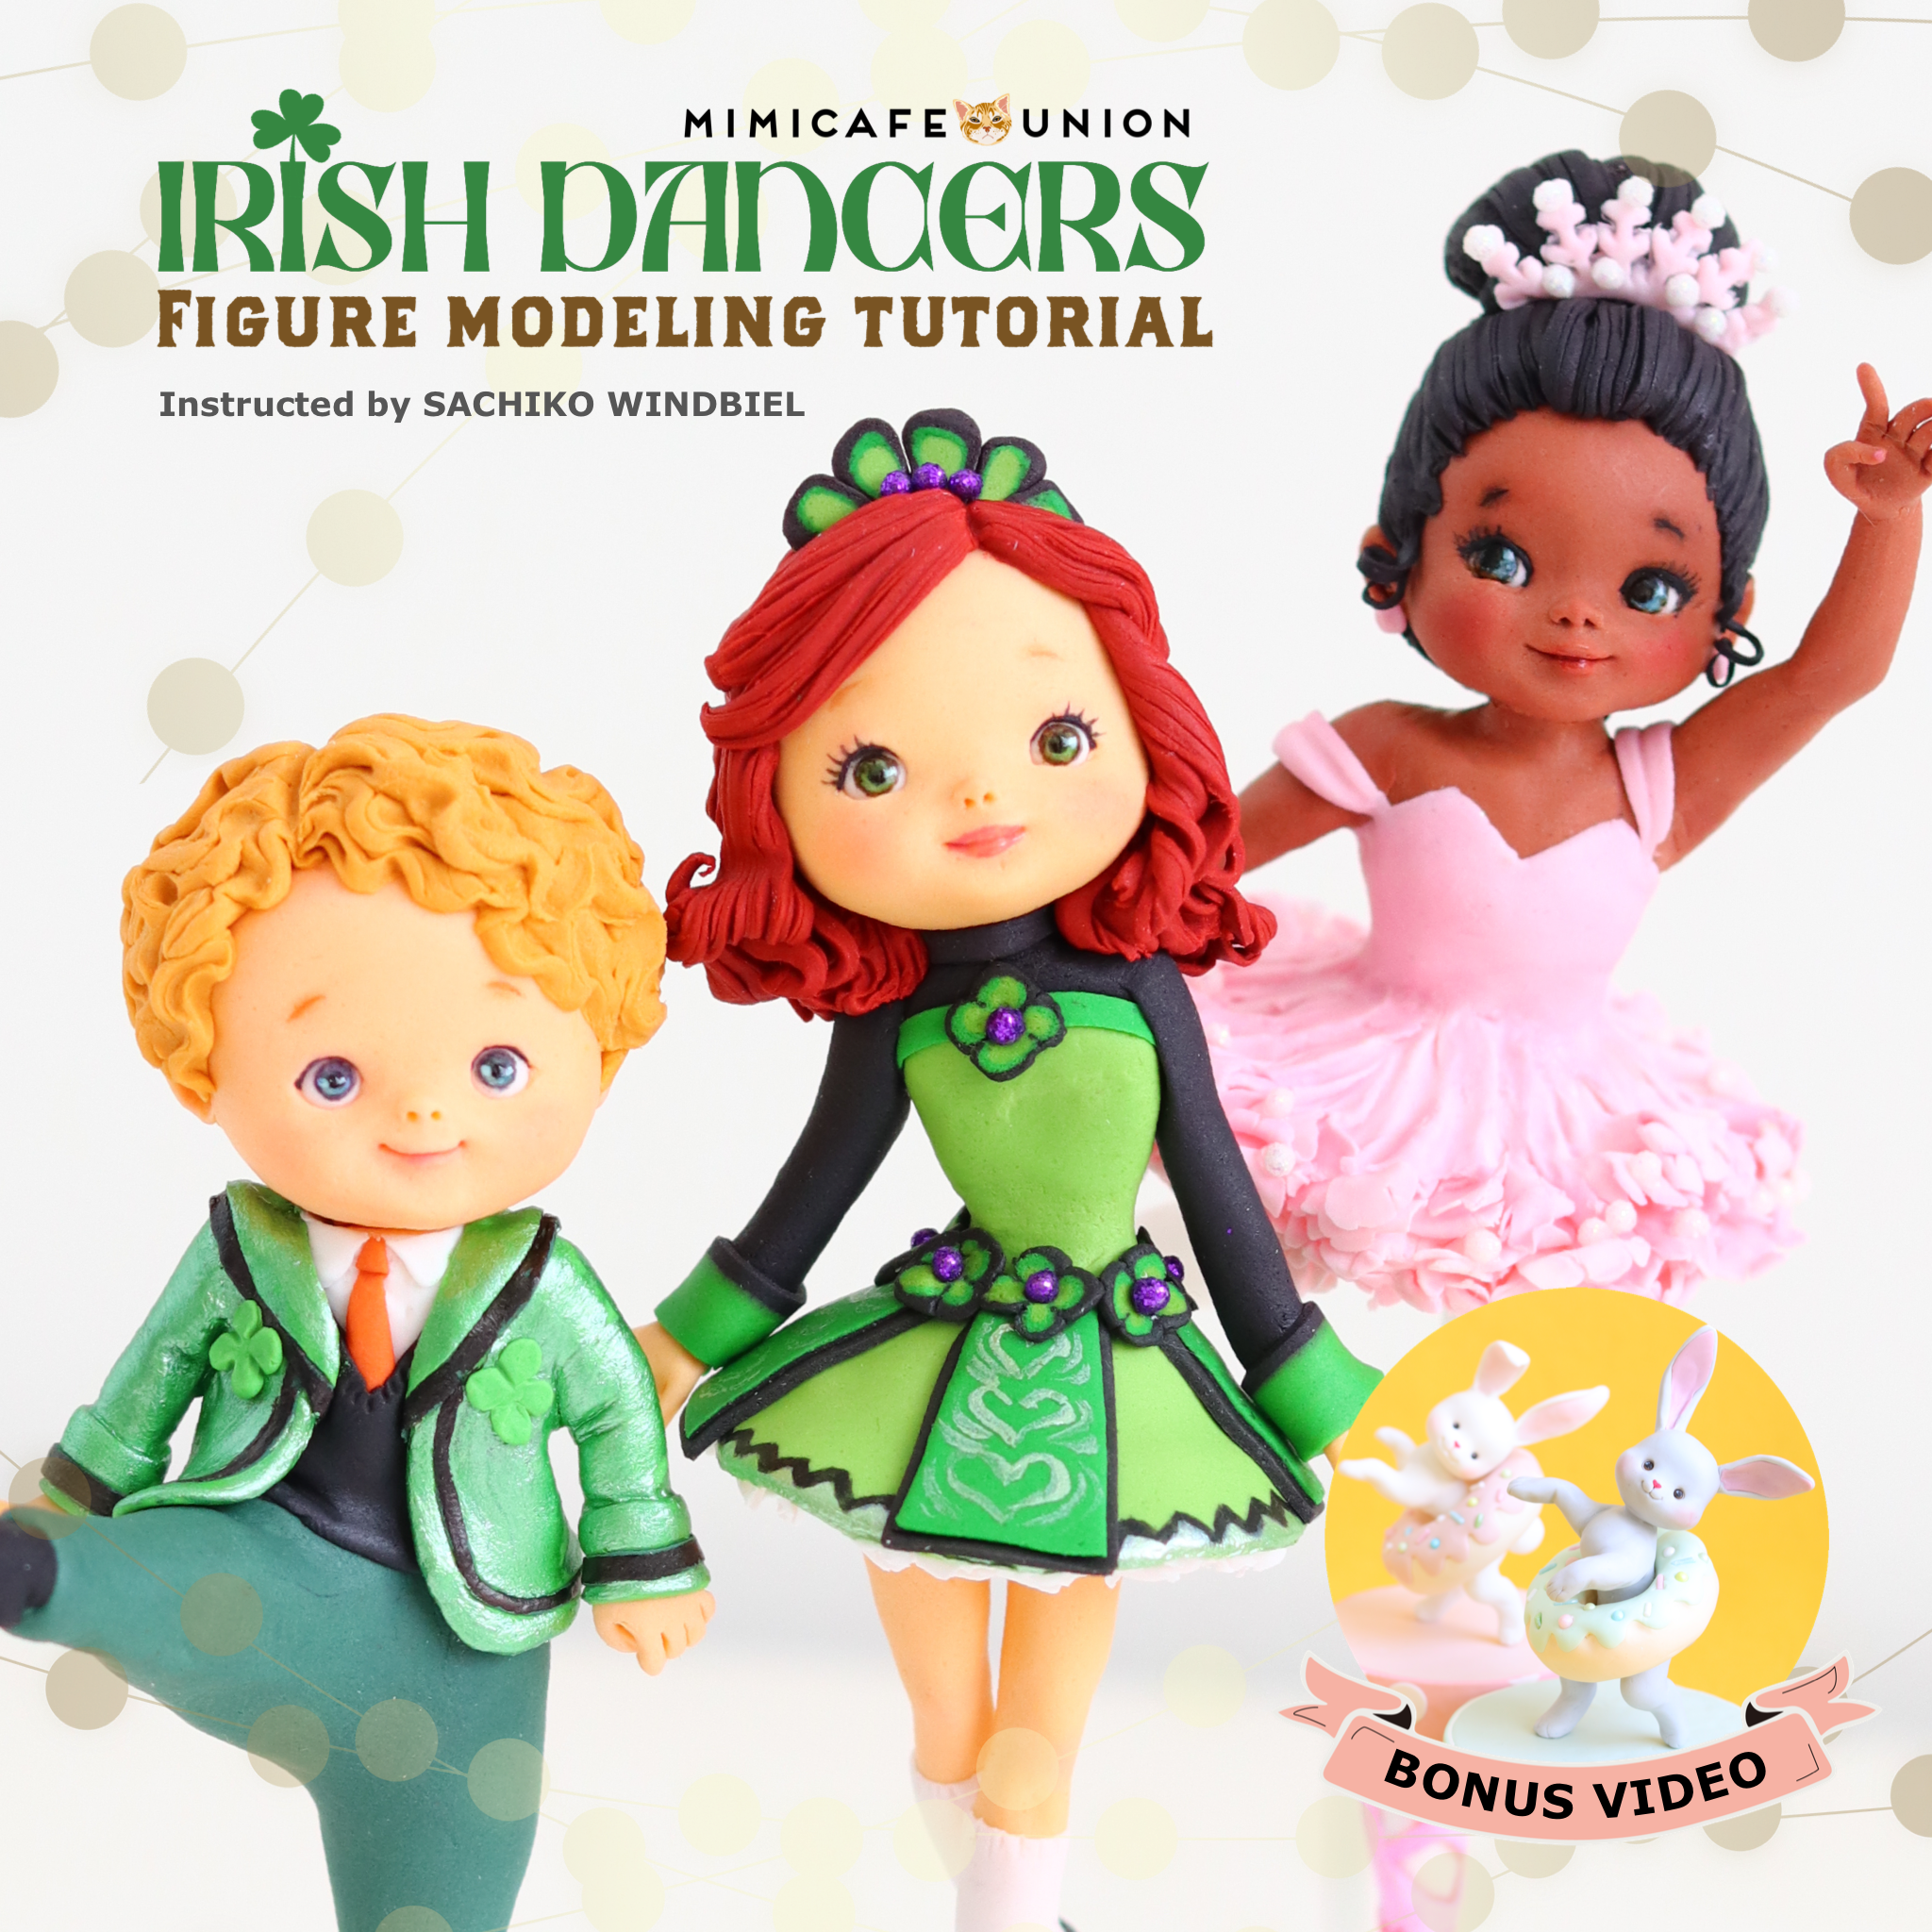 Irish Dancer Tutorial Cover (Square)